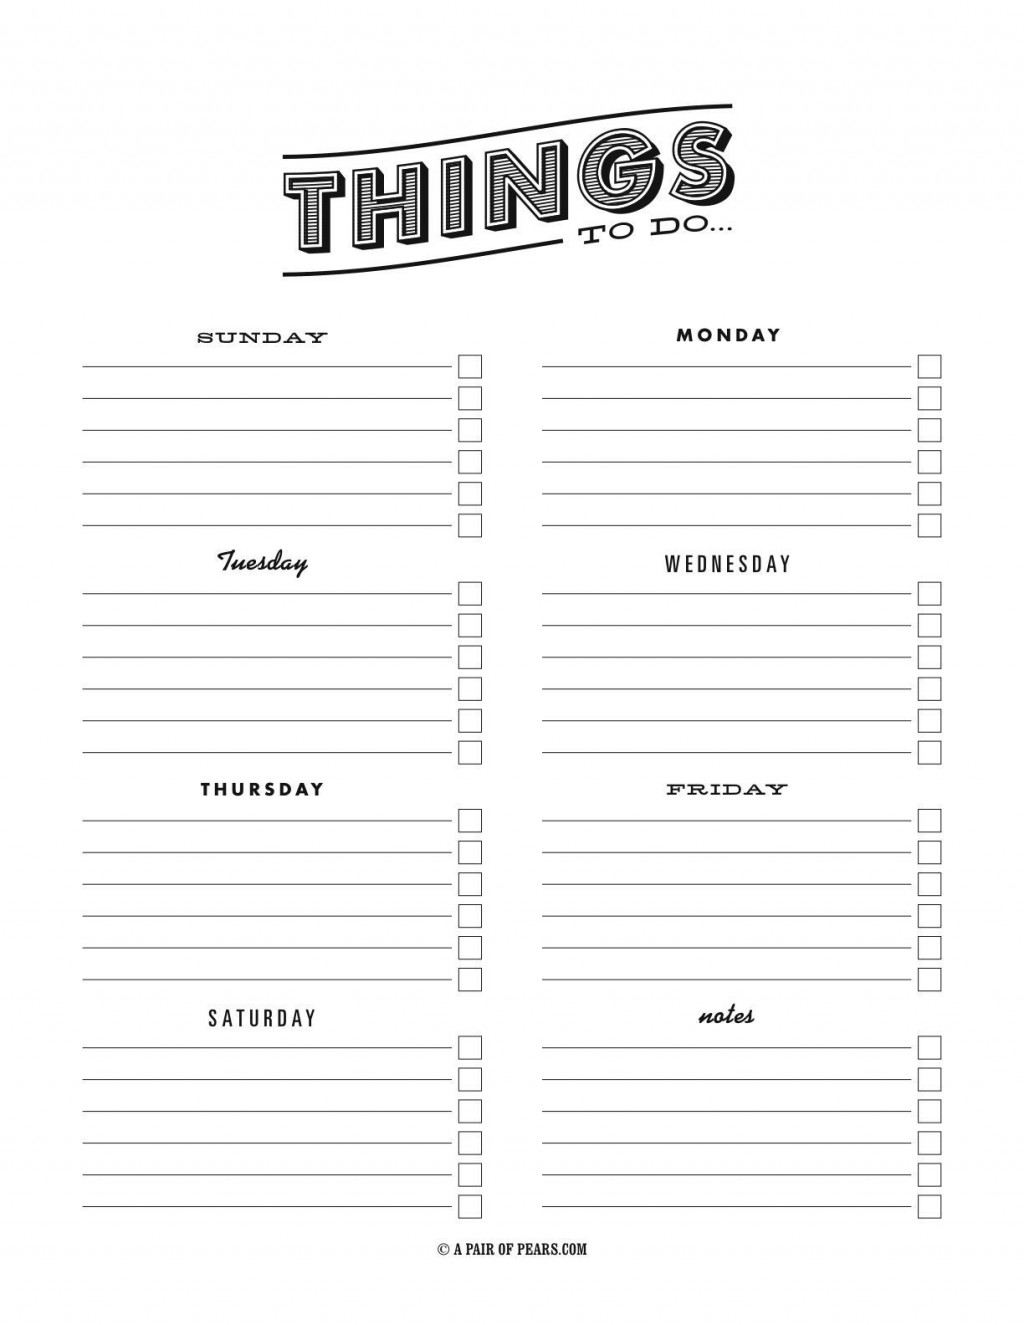 003 Fascinating To Do Checklist Template Image Large